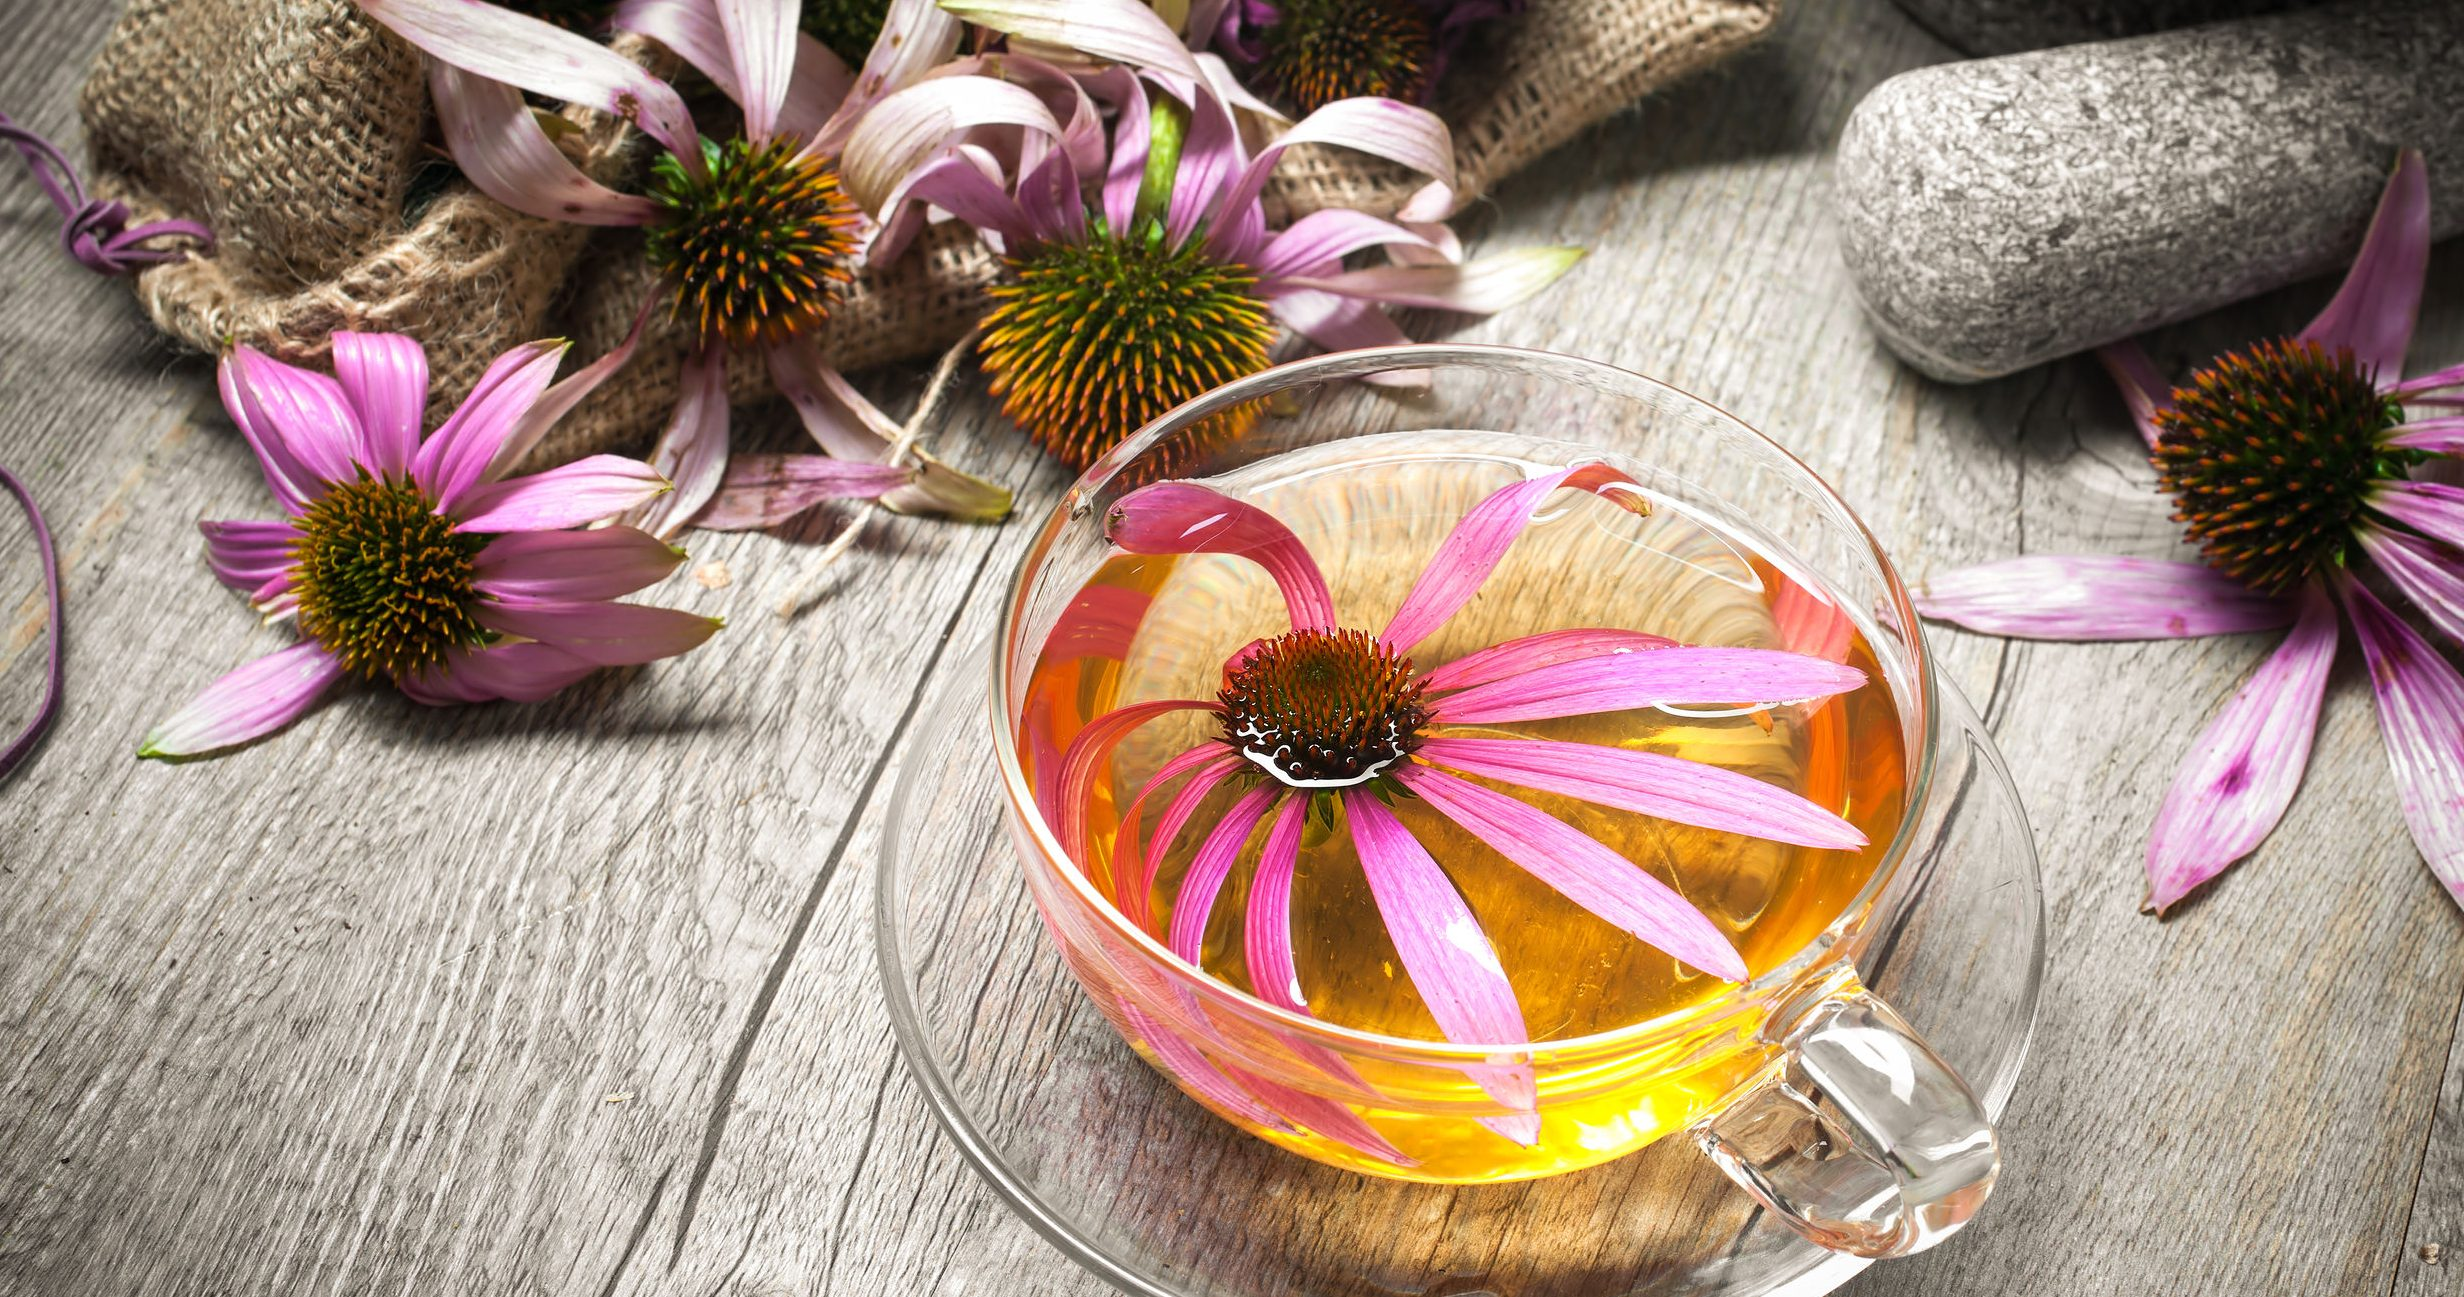 Best Echinacea Supplement 2020: Shopping Guide & Review